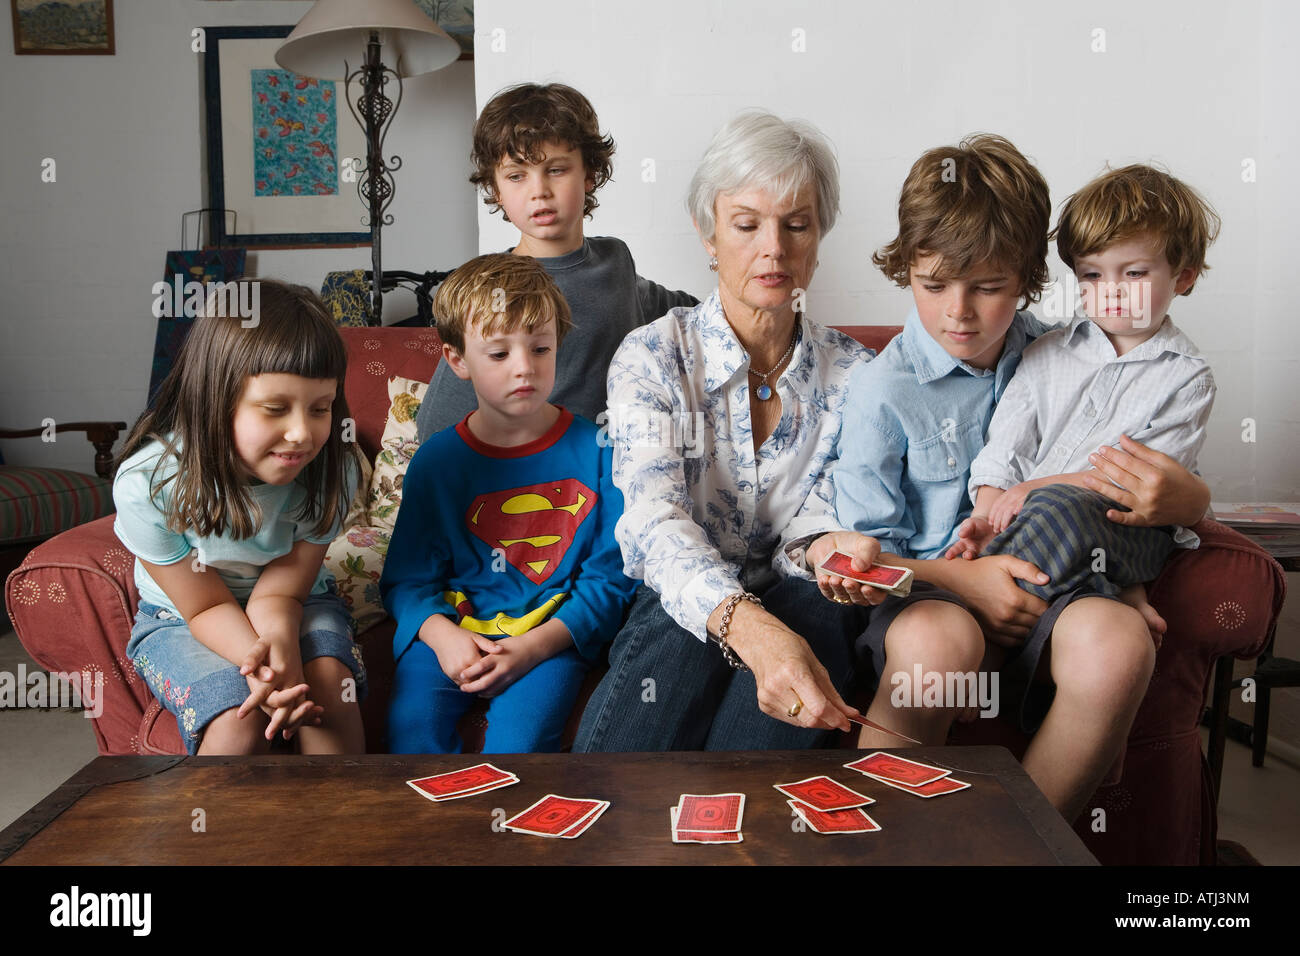 grandmother playing cards with her grandchildren Stock Photo